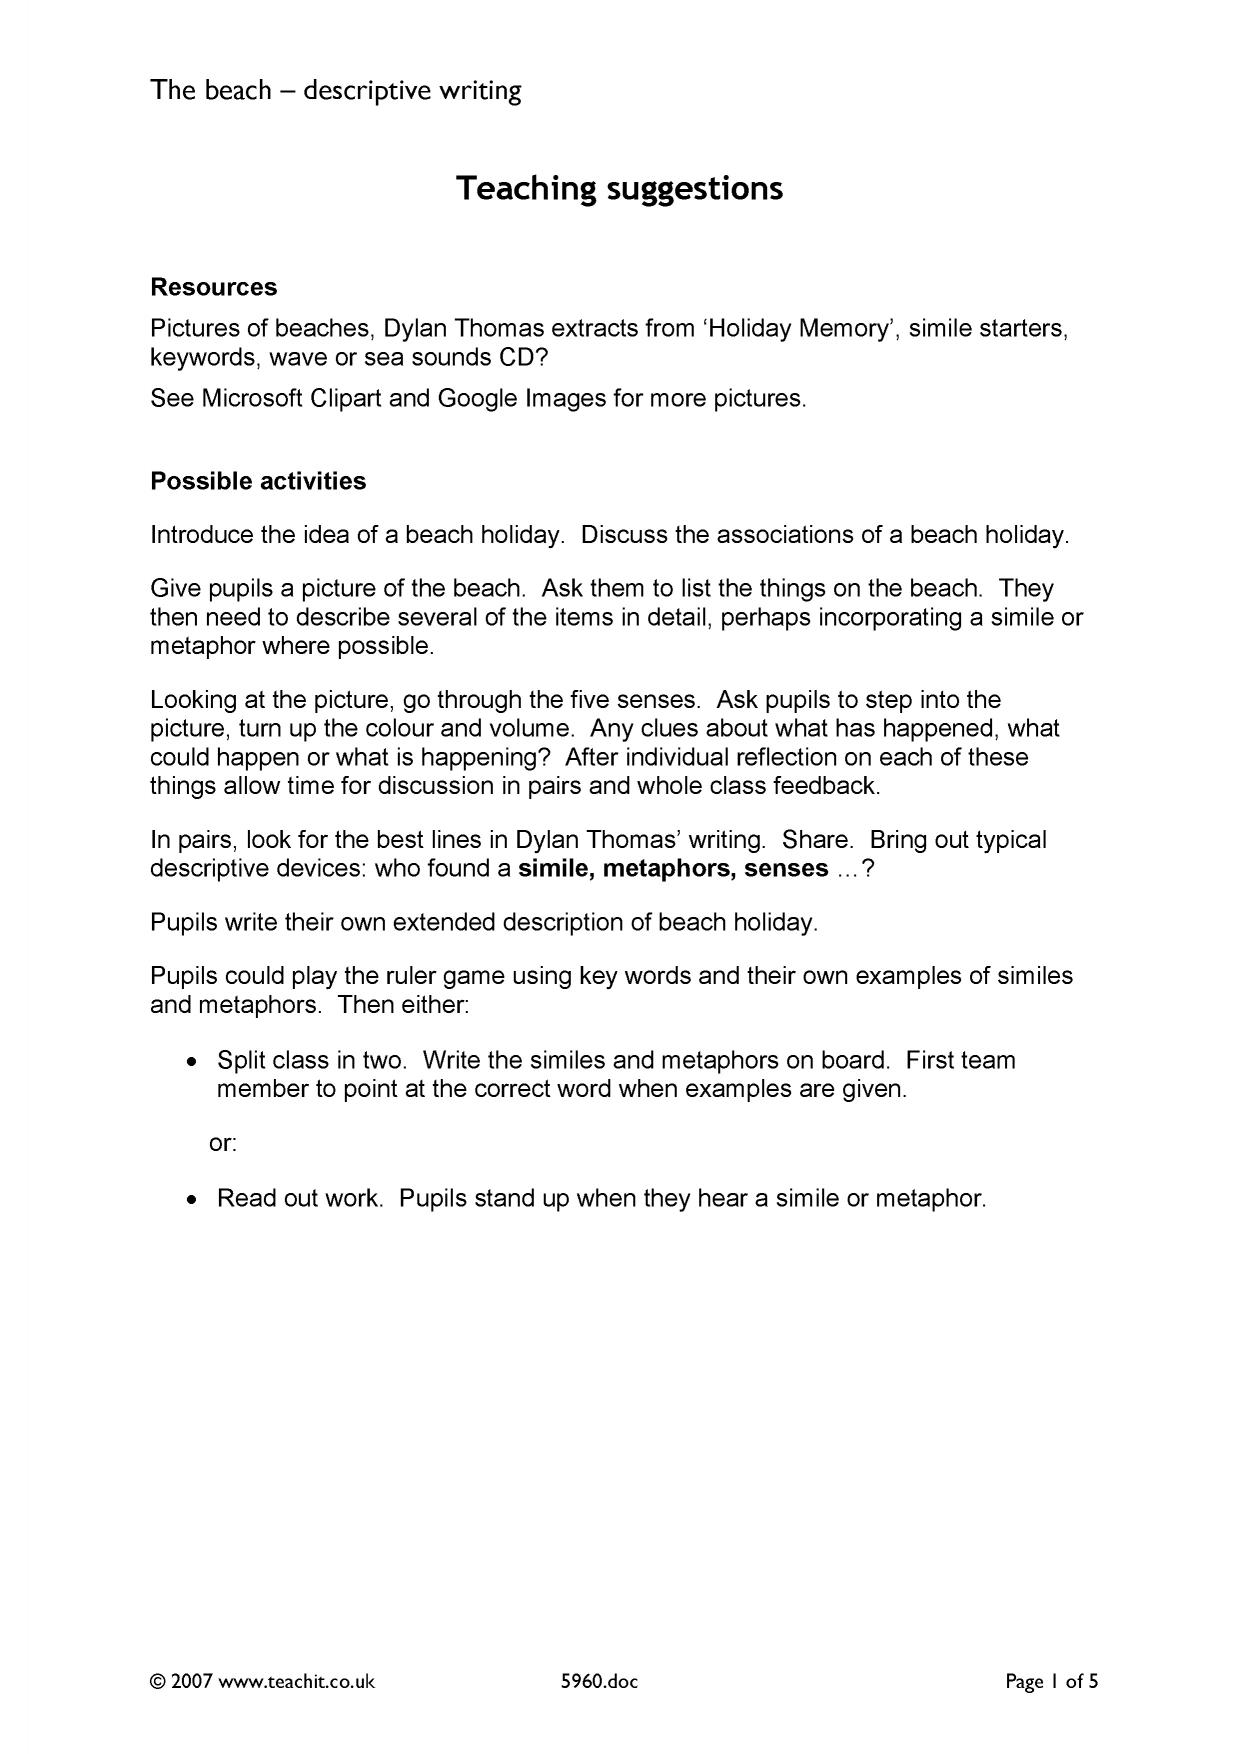 Stormy and raniy weather description essay